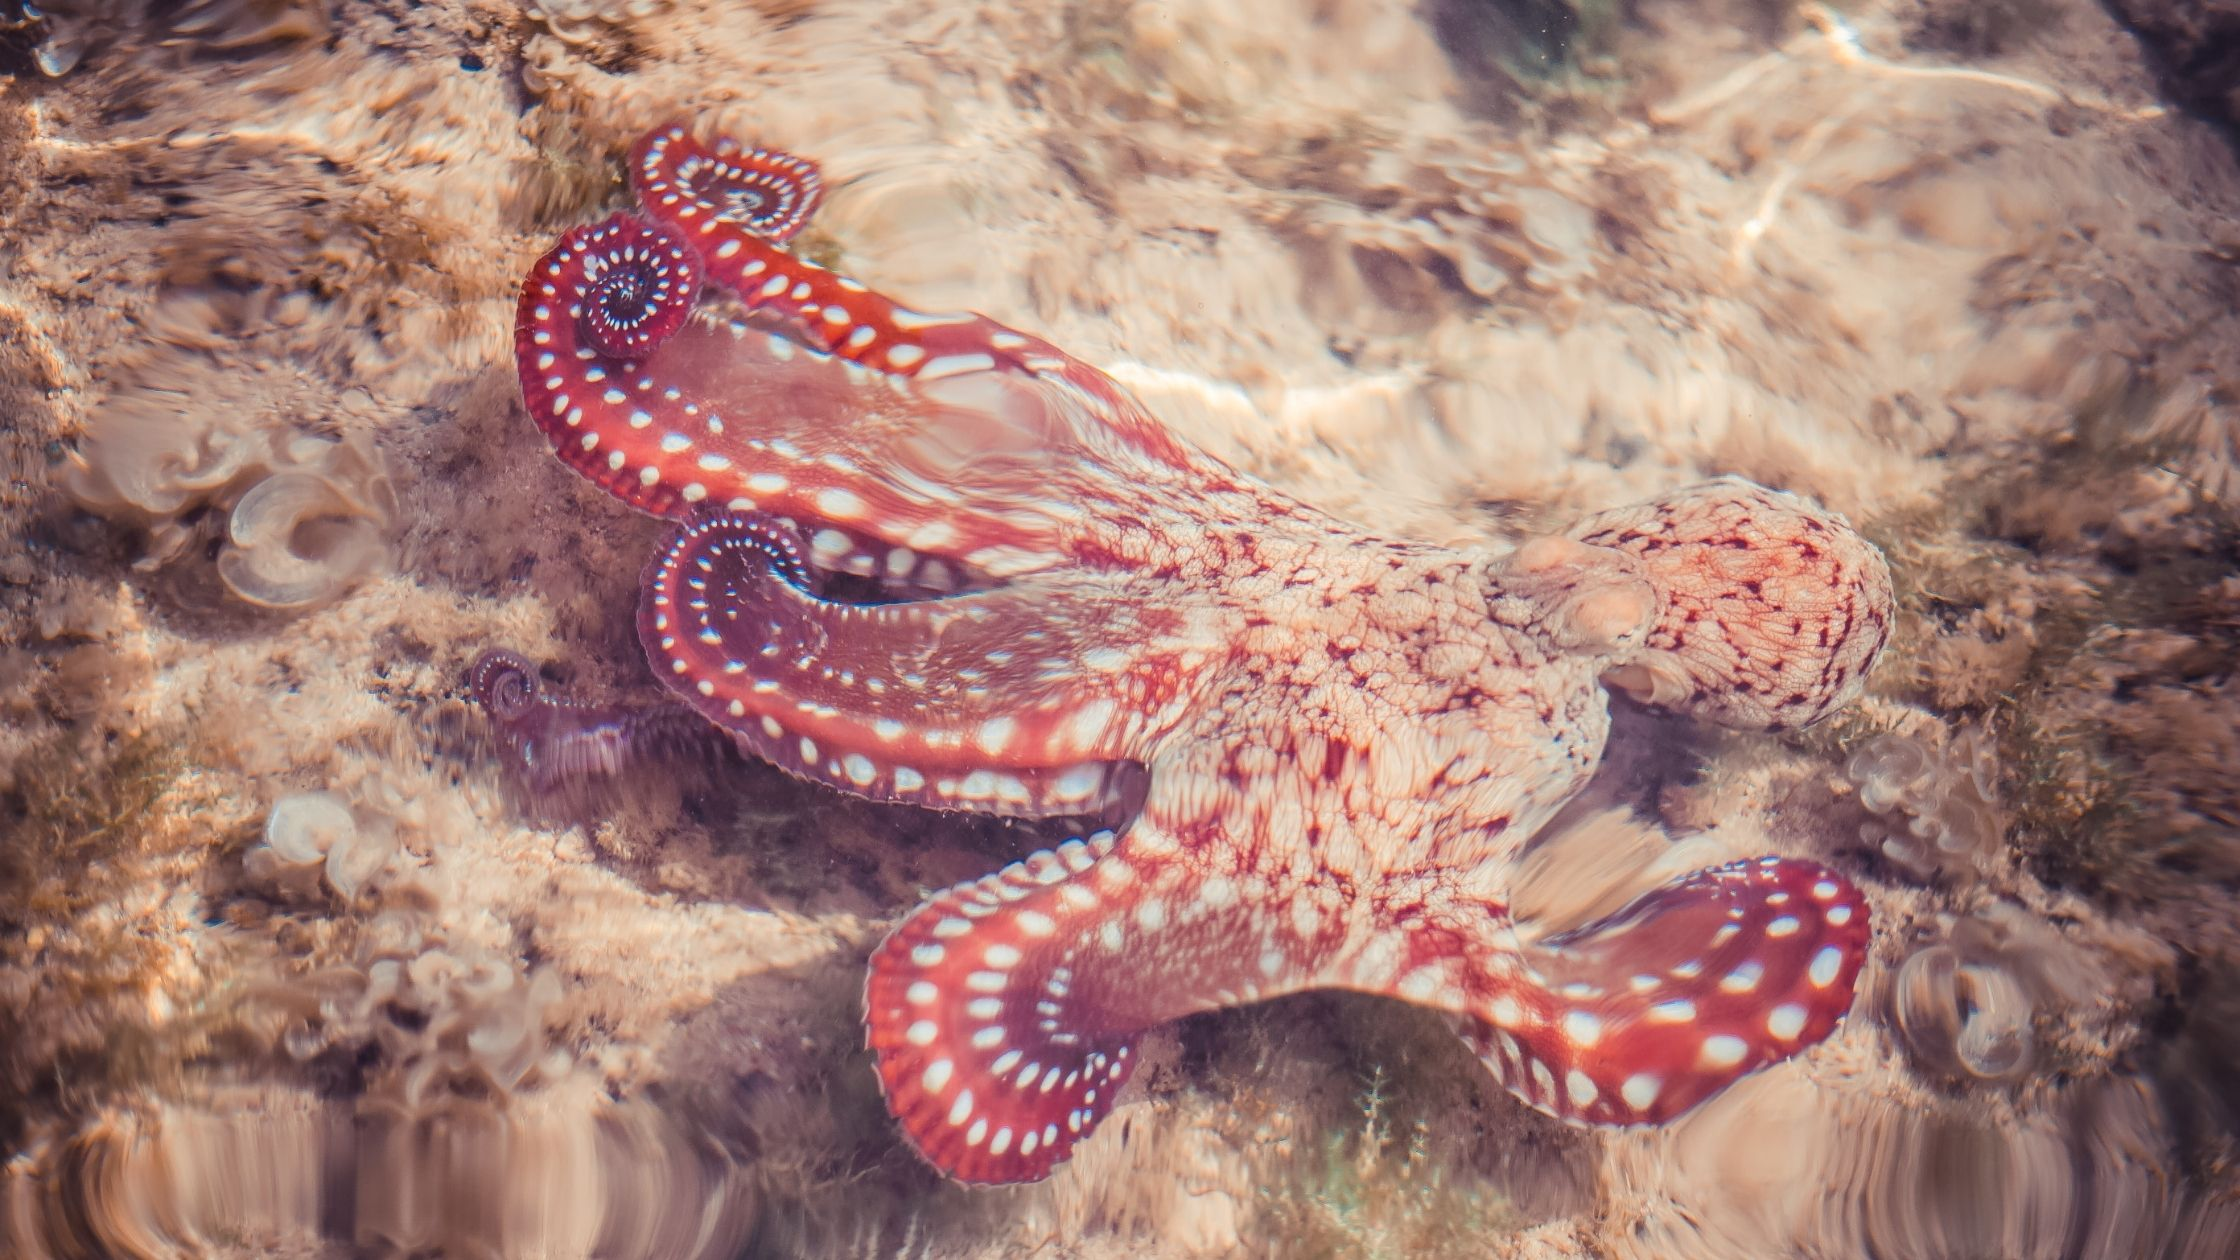 The Octopus, is always a symbol of sacrifice